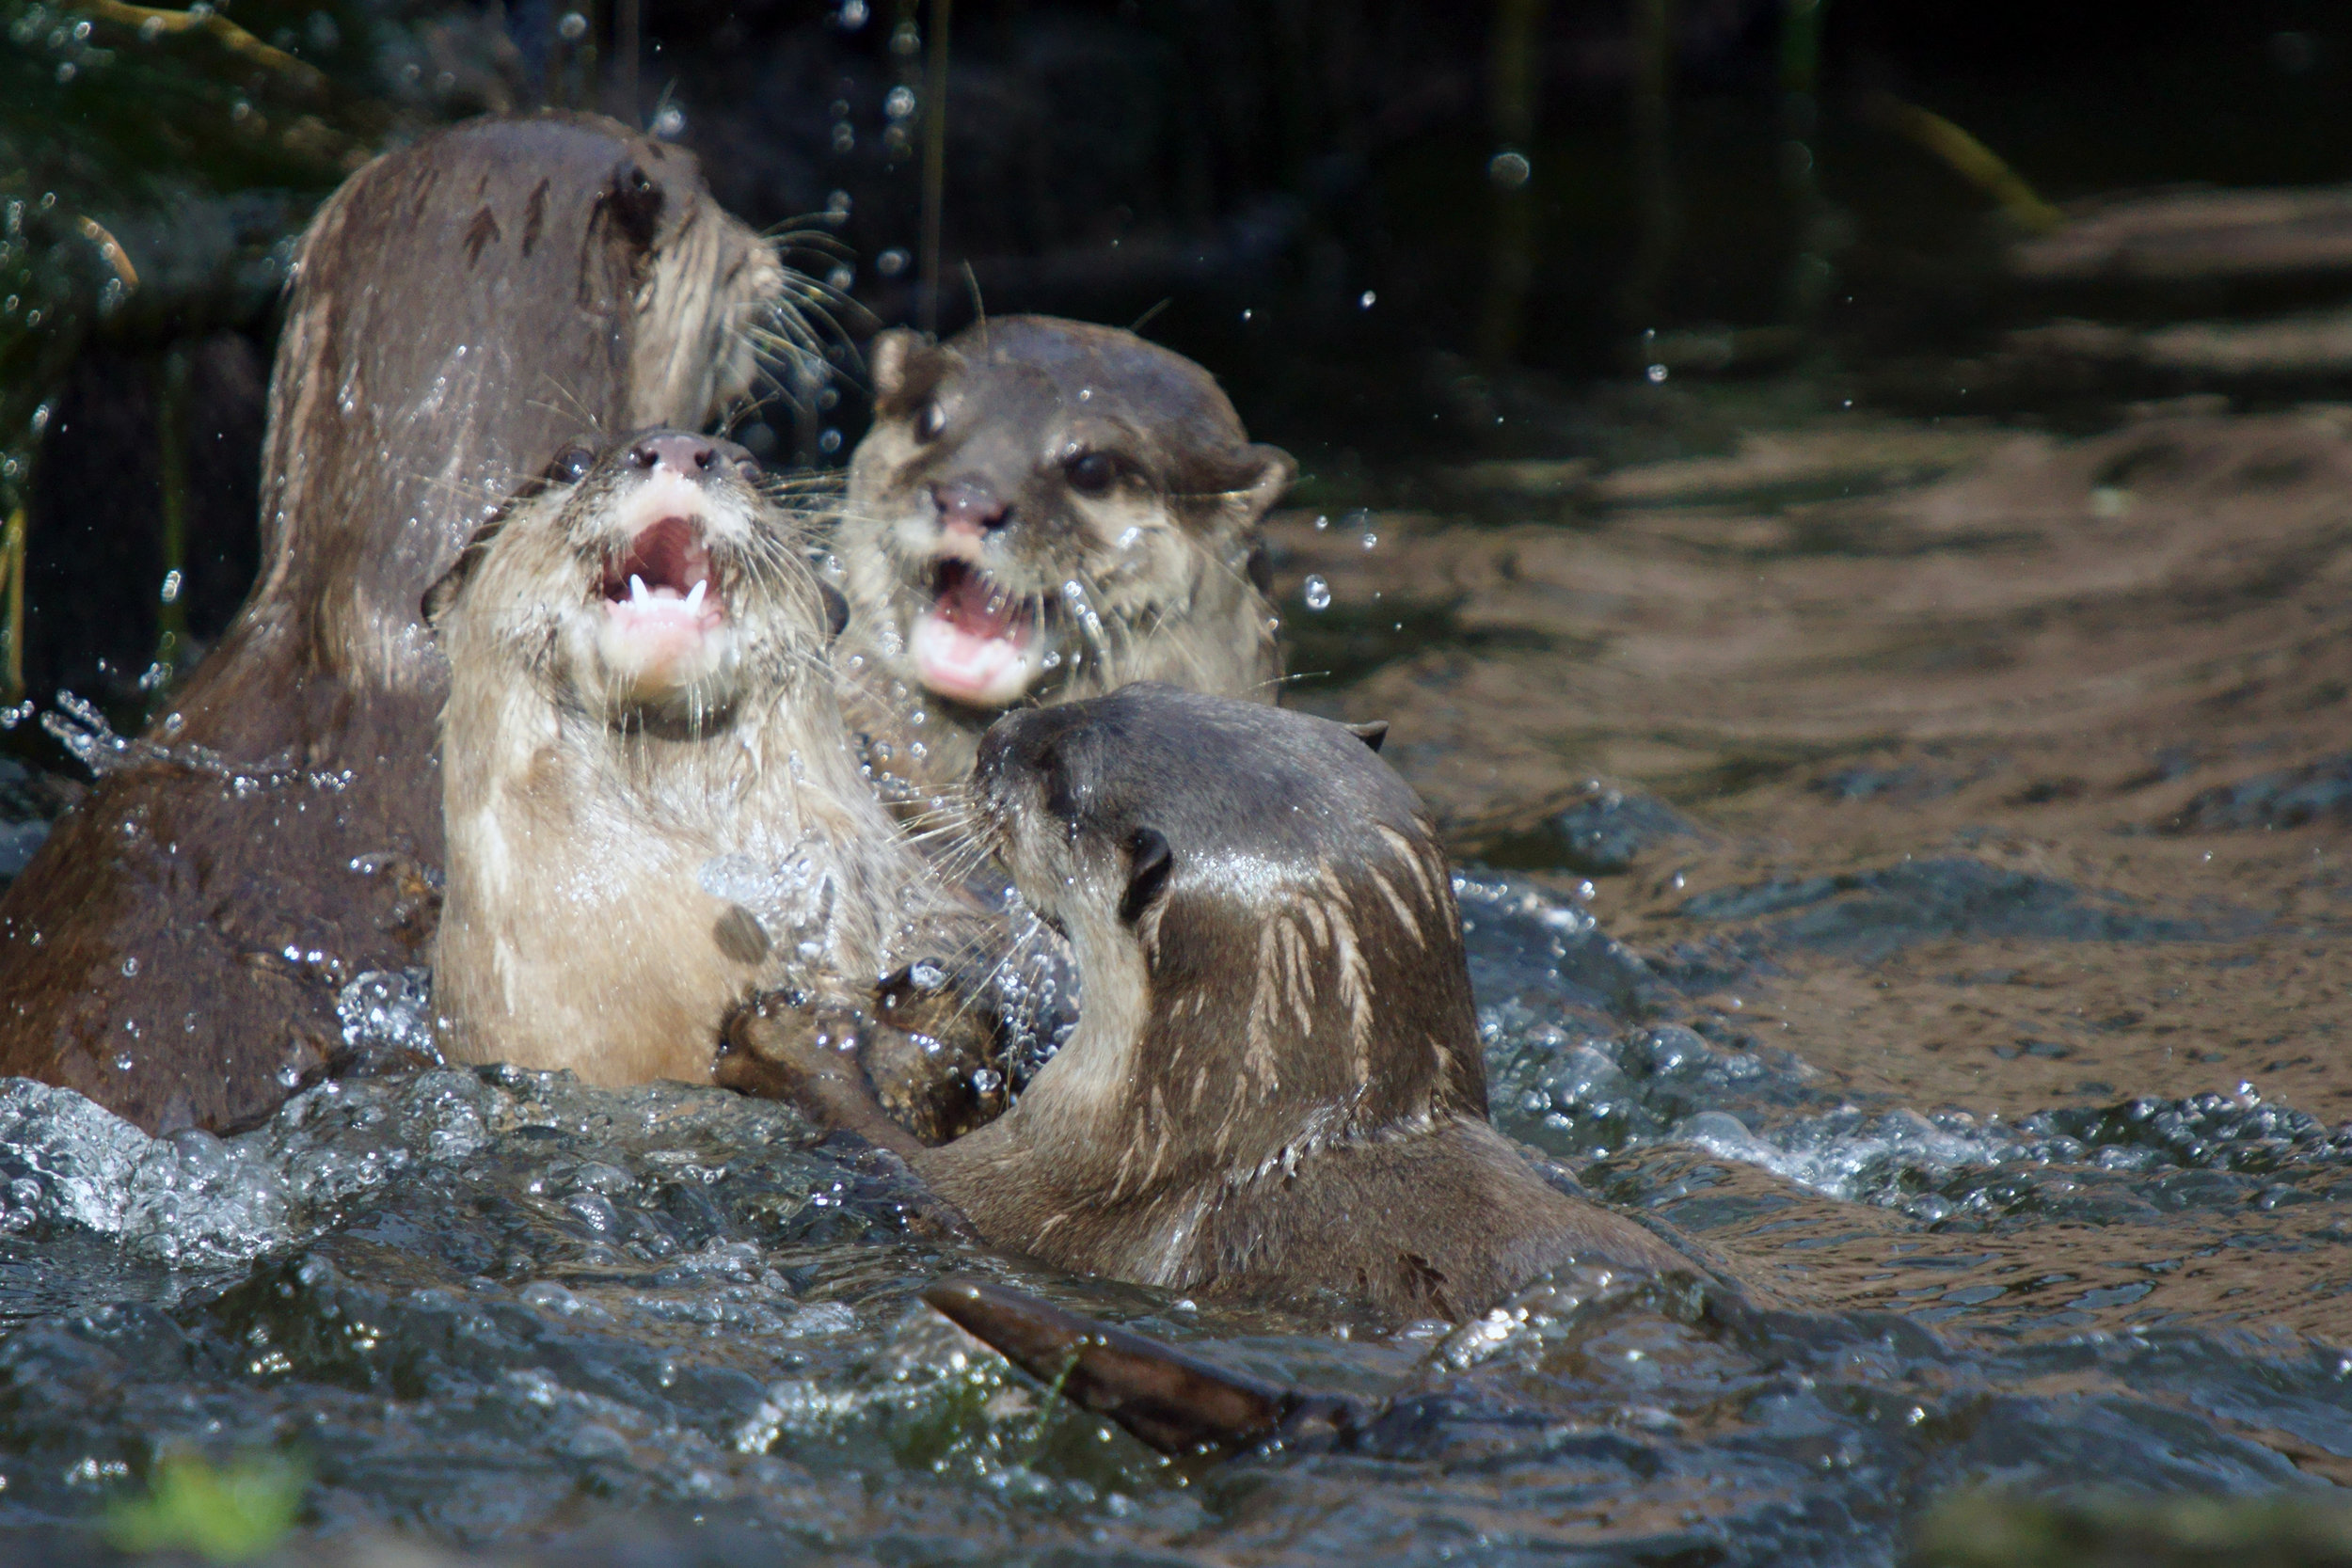 It's an Otter Water Fight!